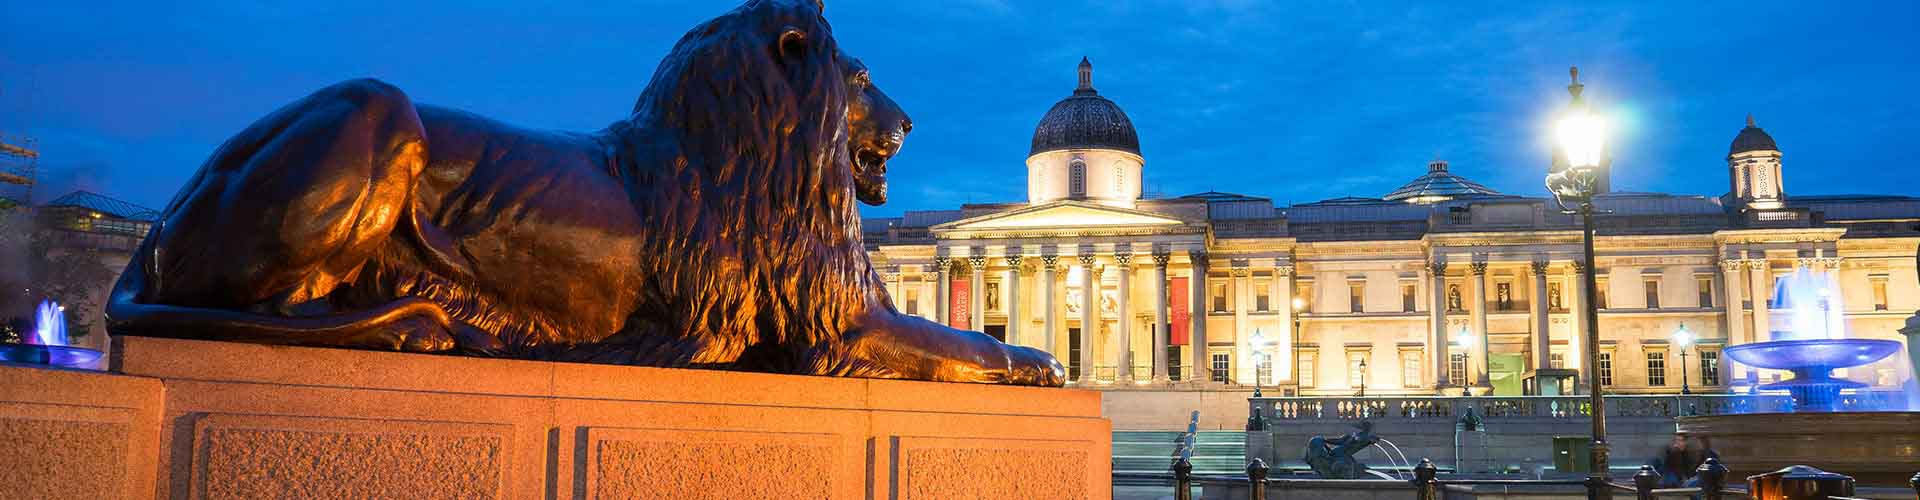 London – Hotels close to Trafalgar Square. Maps of London, Photos and Reviews for each Hotel in London.